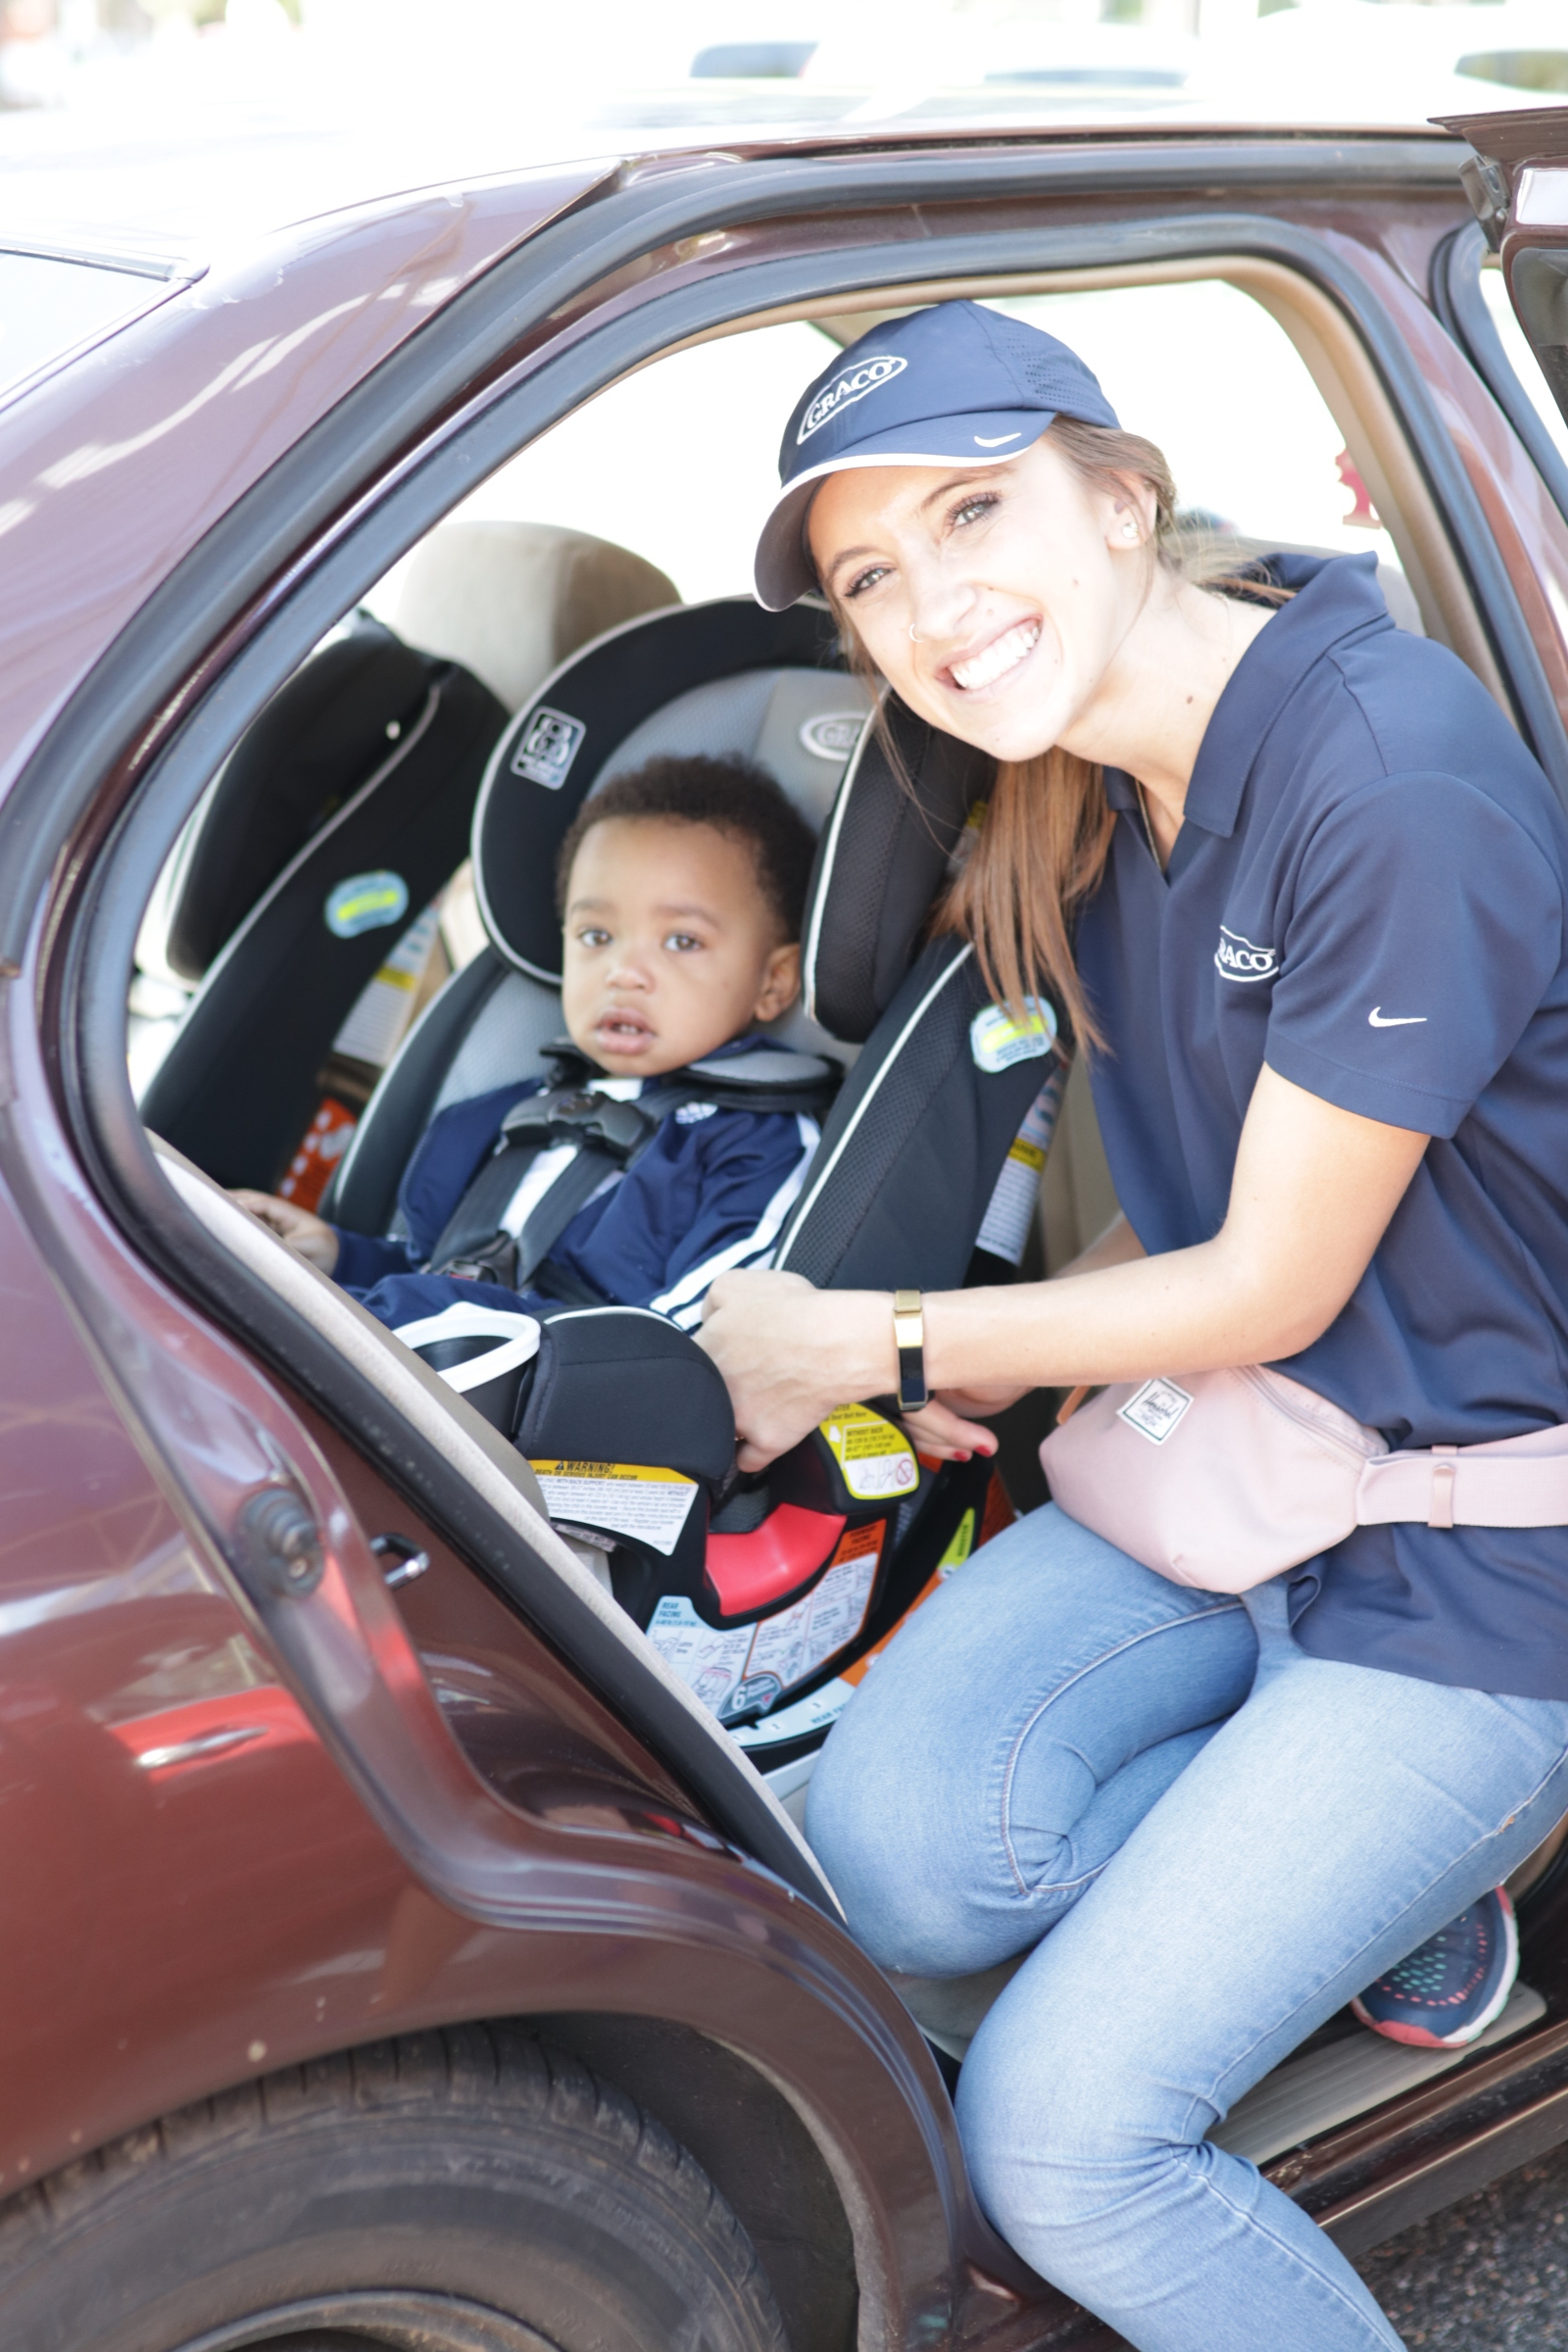 3 Simple Safety Tips I learned during Child Passenger Safety Month that You Can Apply Right Now Car Seat installation tips